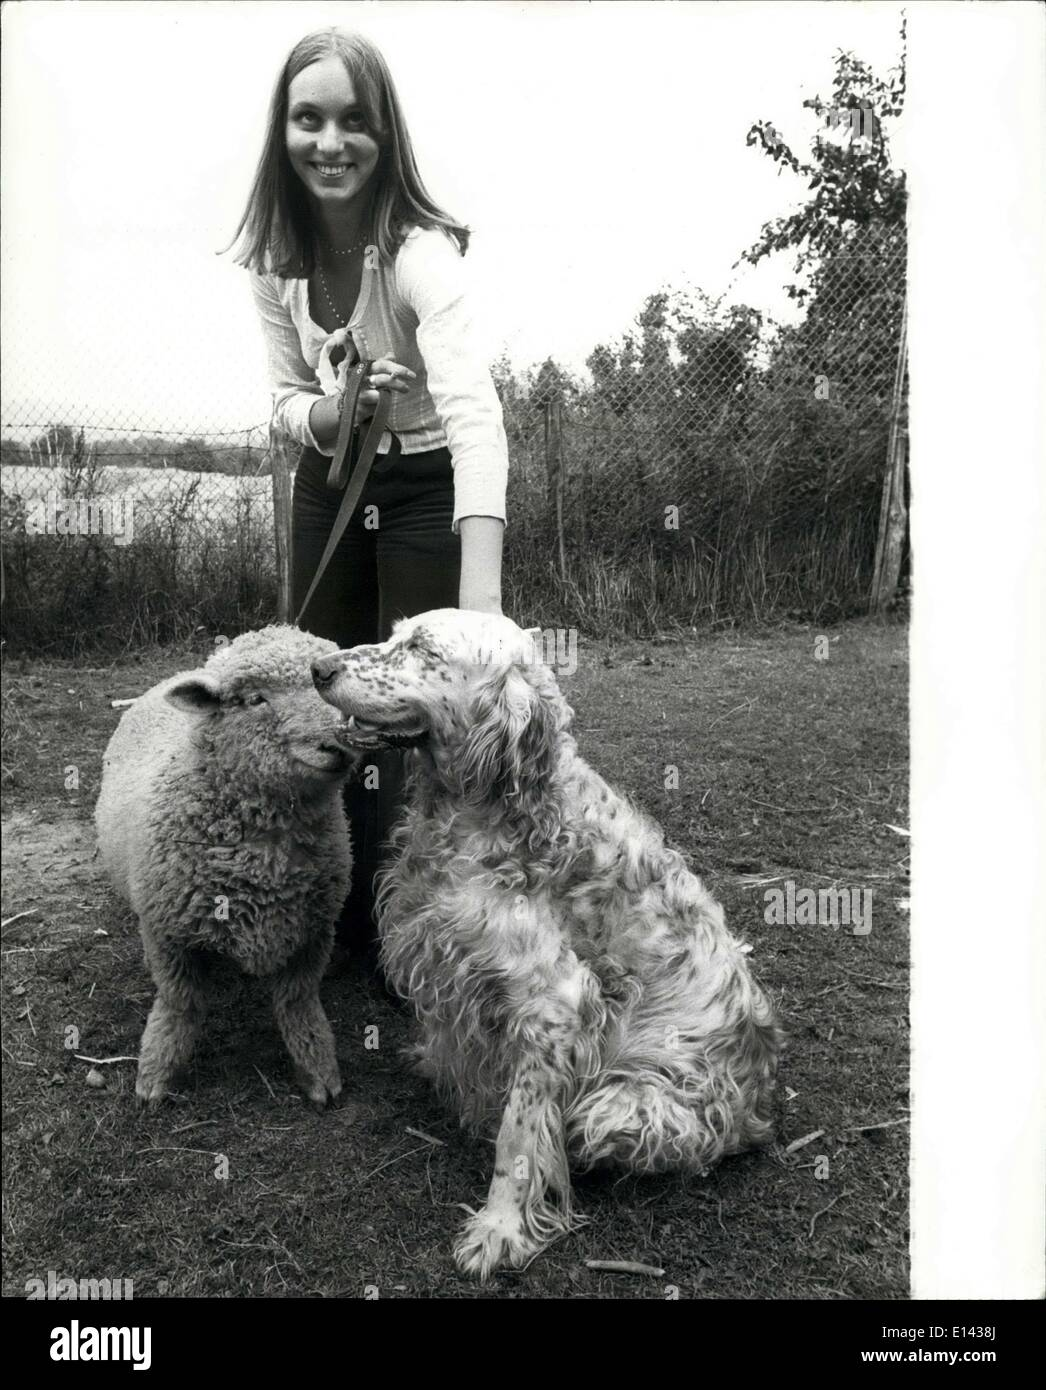 Mar. 31, 2012 - Carilyn had a little lamb: people may stare, but Carilyn oddy of otford, Kent, doesn't think it's unusual to take her pet sheep, Victoria, out for walks along with her dog star. Neither do star or Victoria. They get on famously, and even travel with the 19-year-old teacher training student by car. All photos by Cathy lehrfield. cheek to cheek with their mistress Carilyn are star and Victoria. - Stock Image